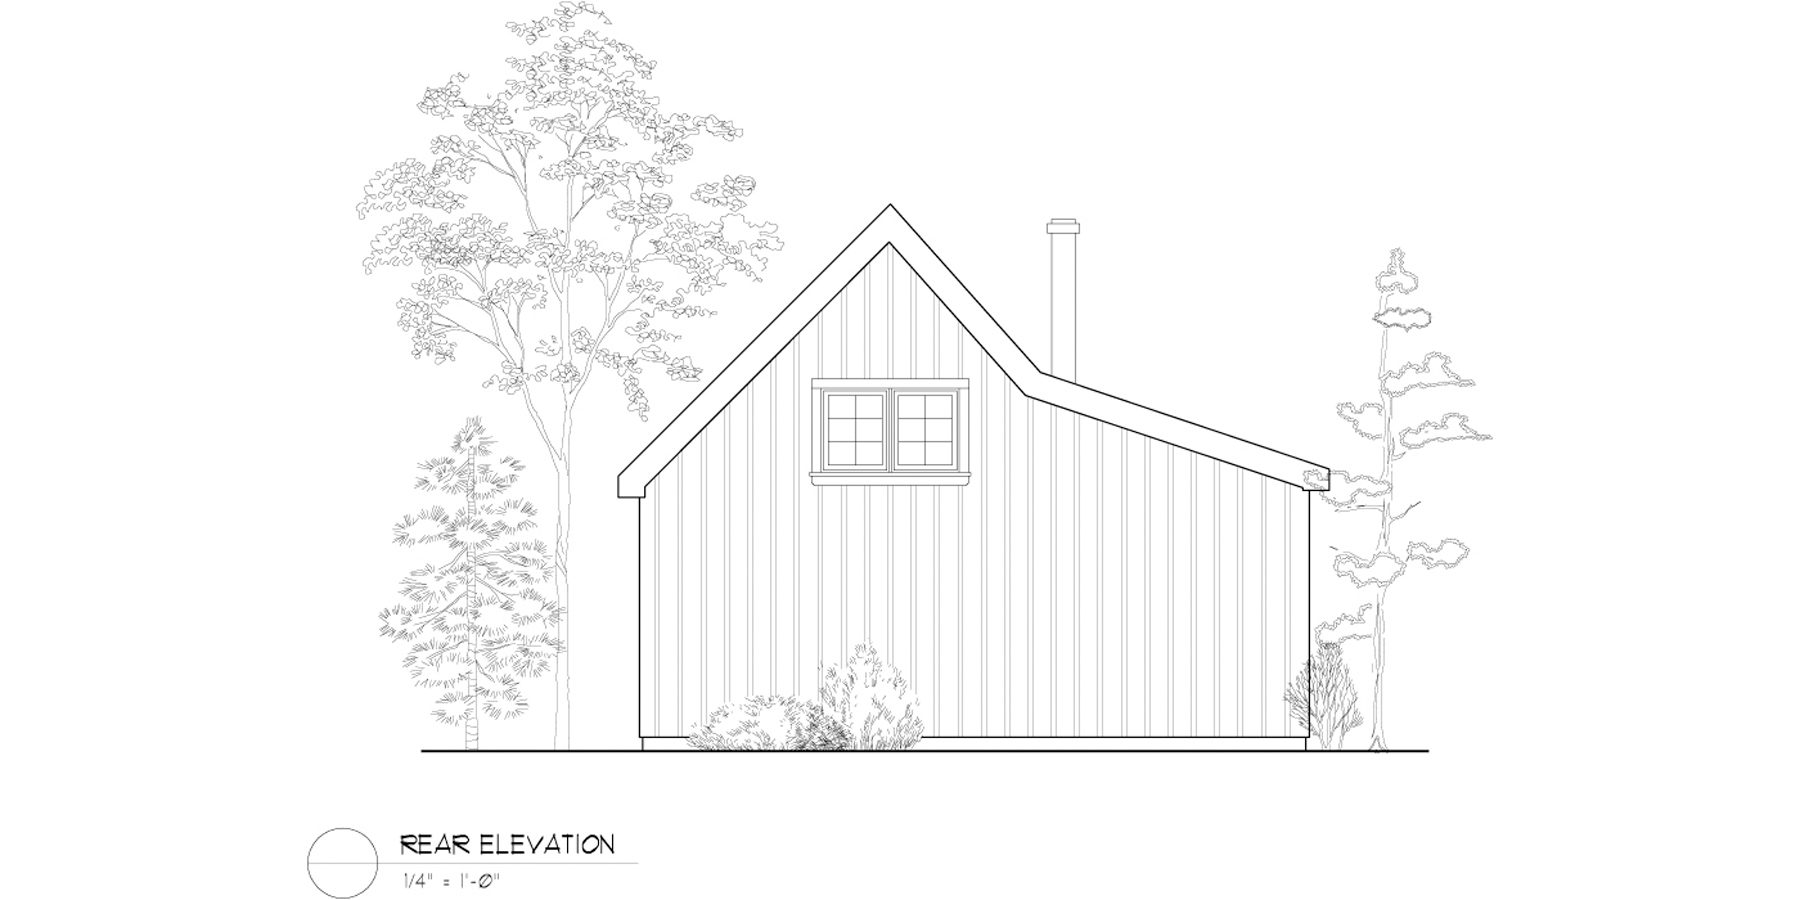 Normerica Timber Frame, House Plan, The Retreat 3143, Rear Elevation